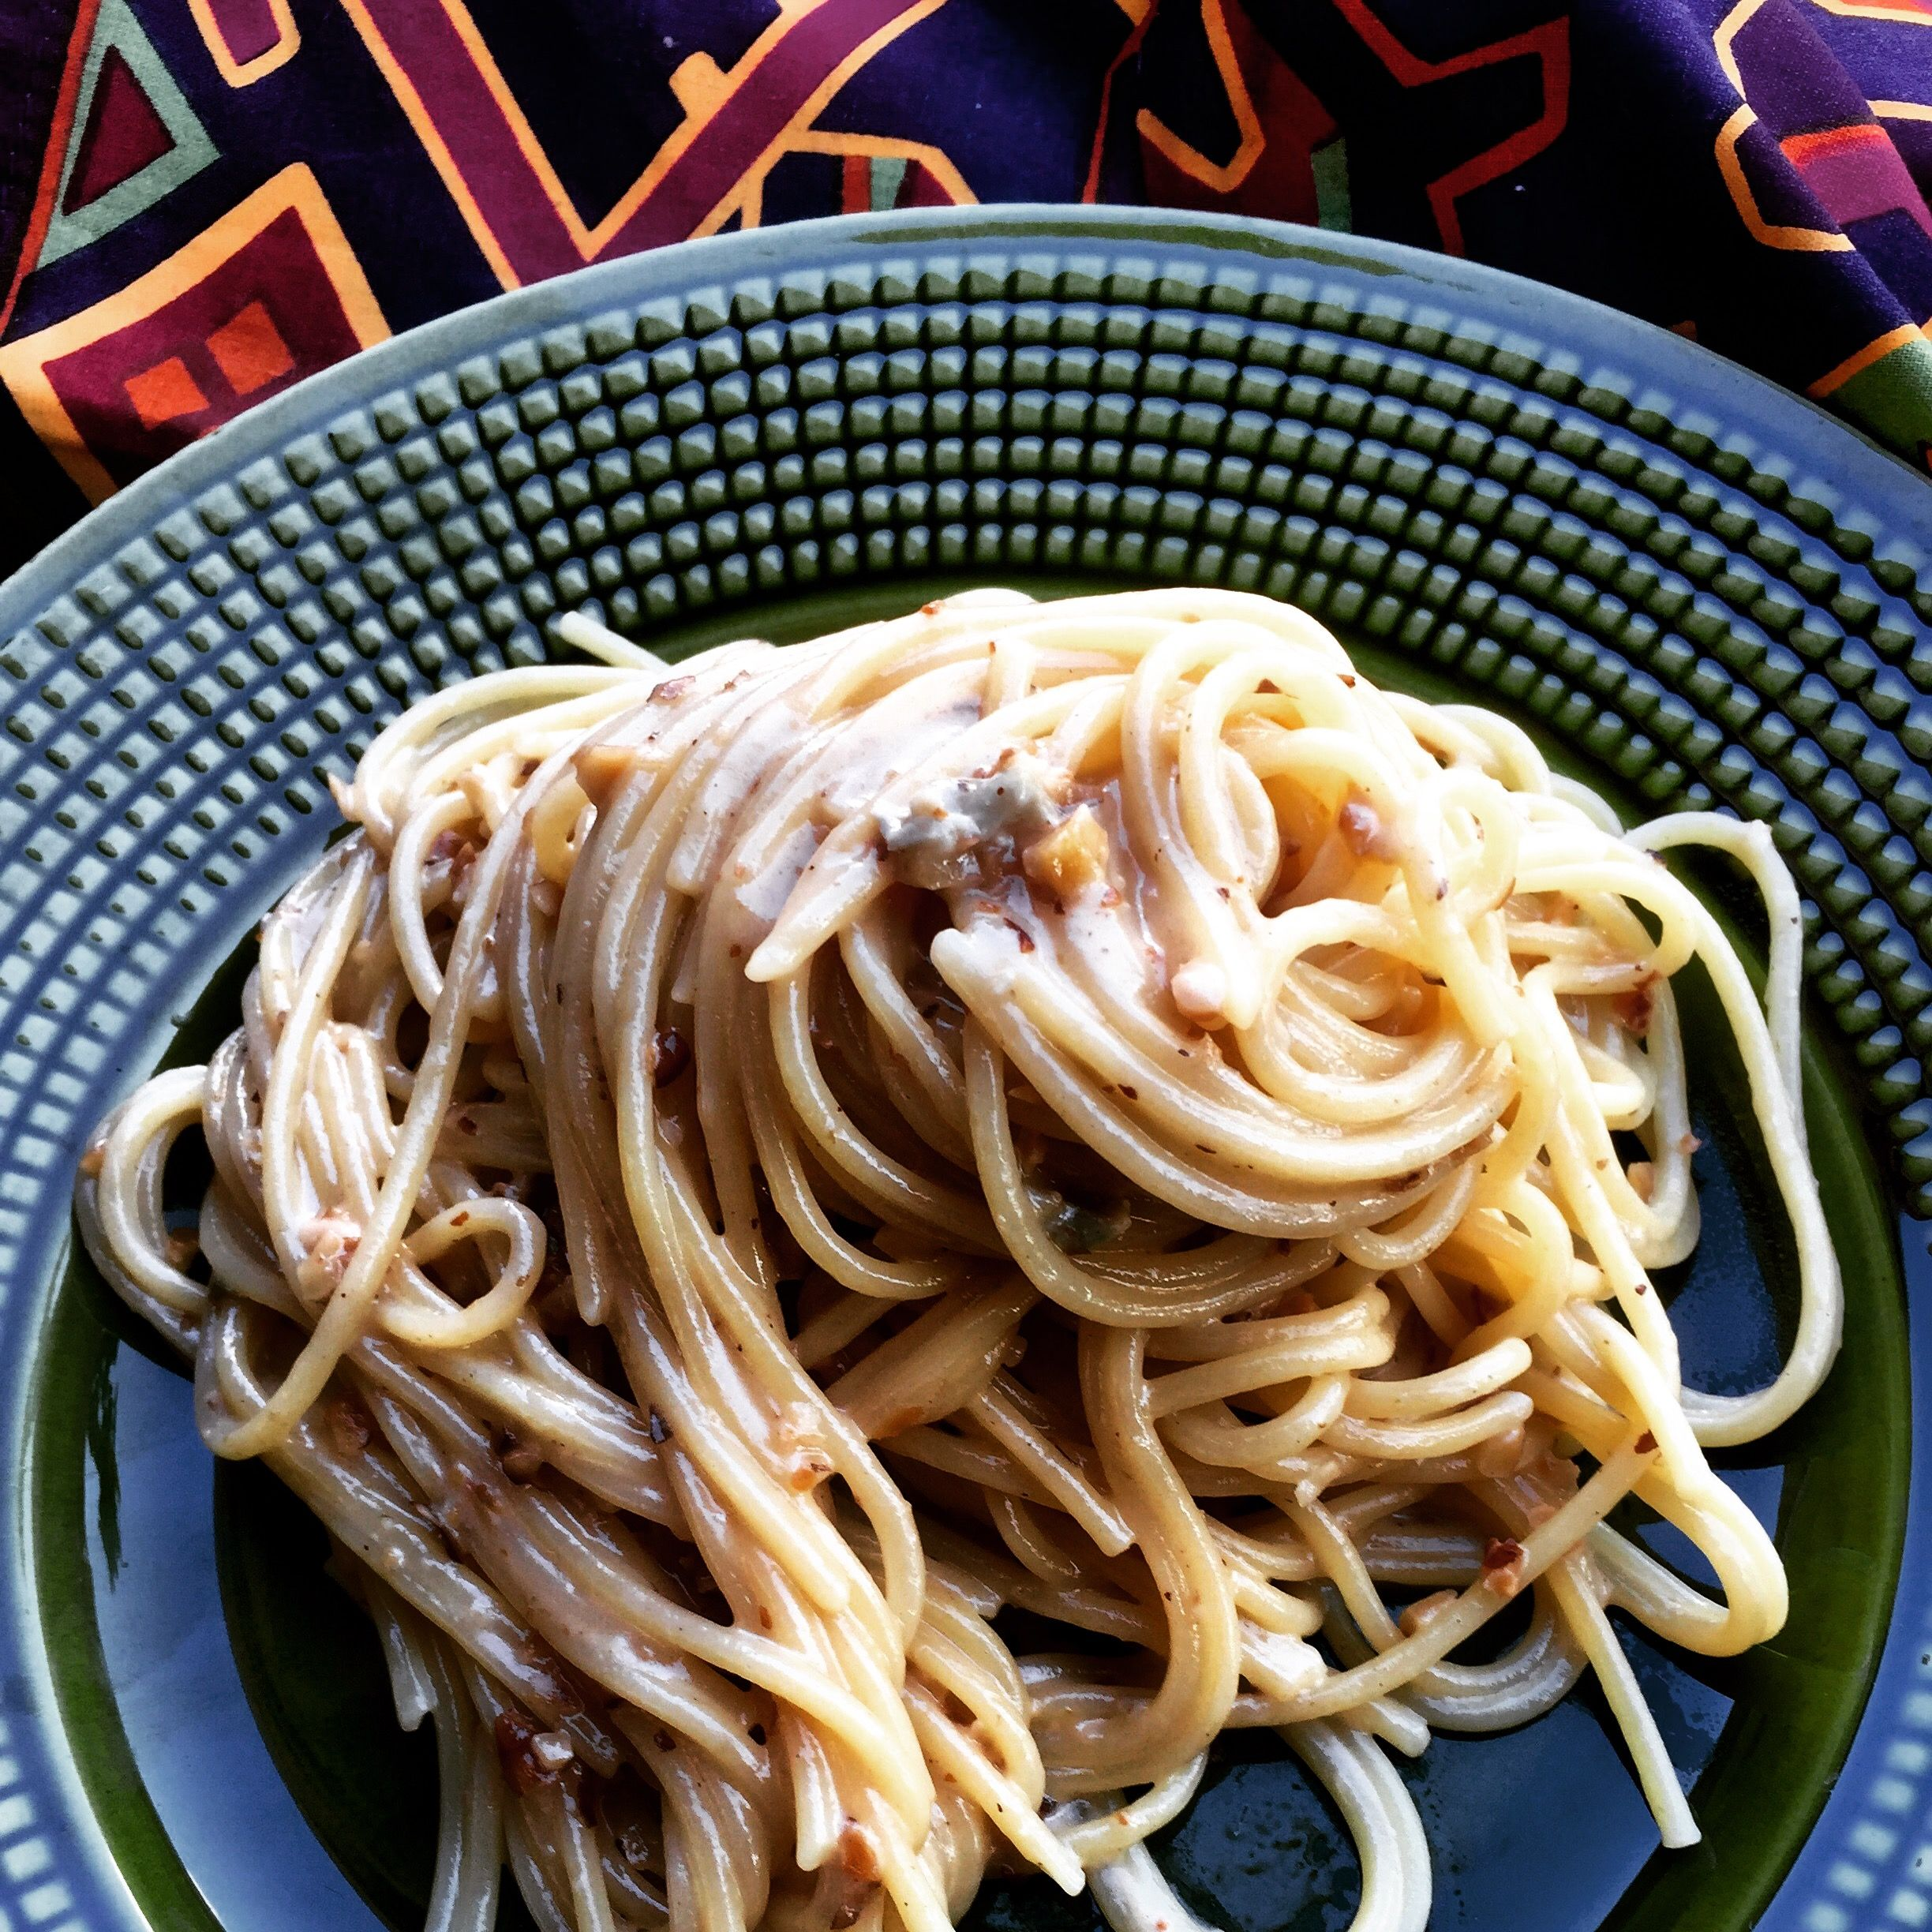 Conti Bronze Drawn Artigianale Spaghetti with Walnut and Gorgonzola sauce.